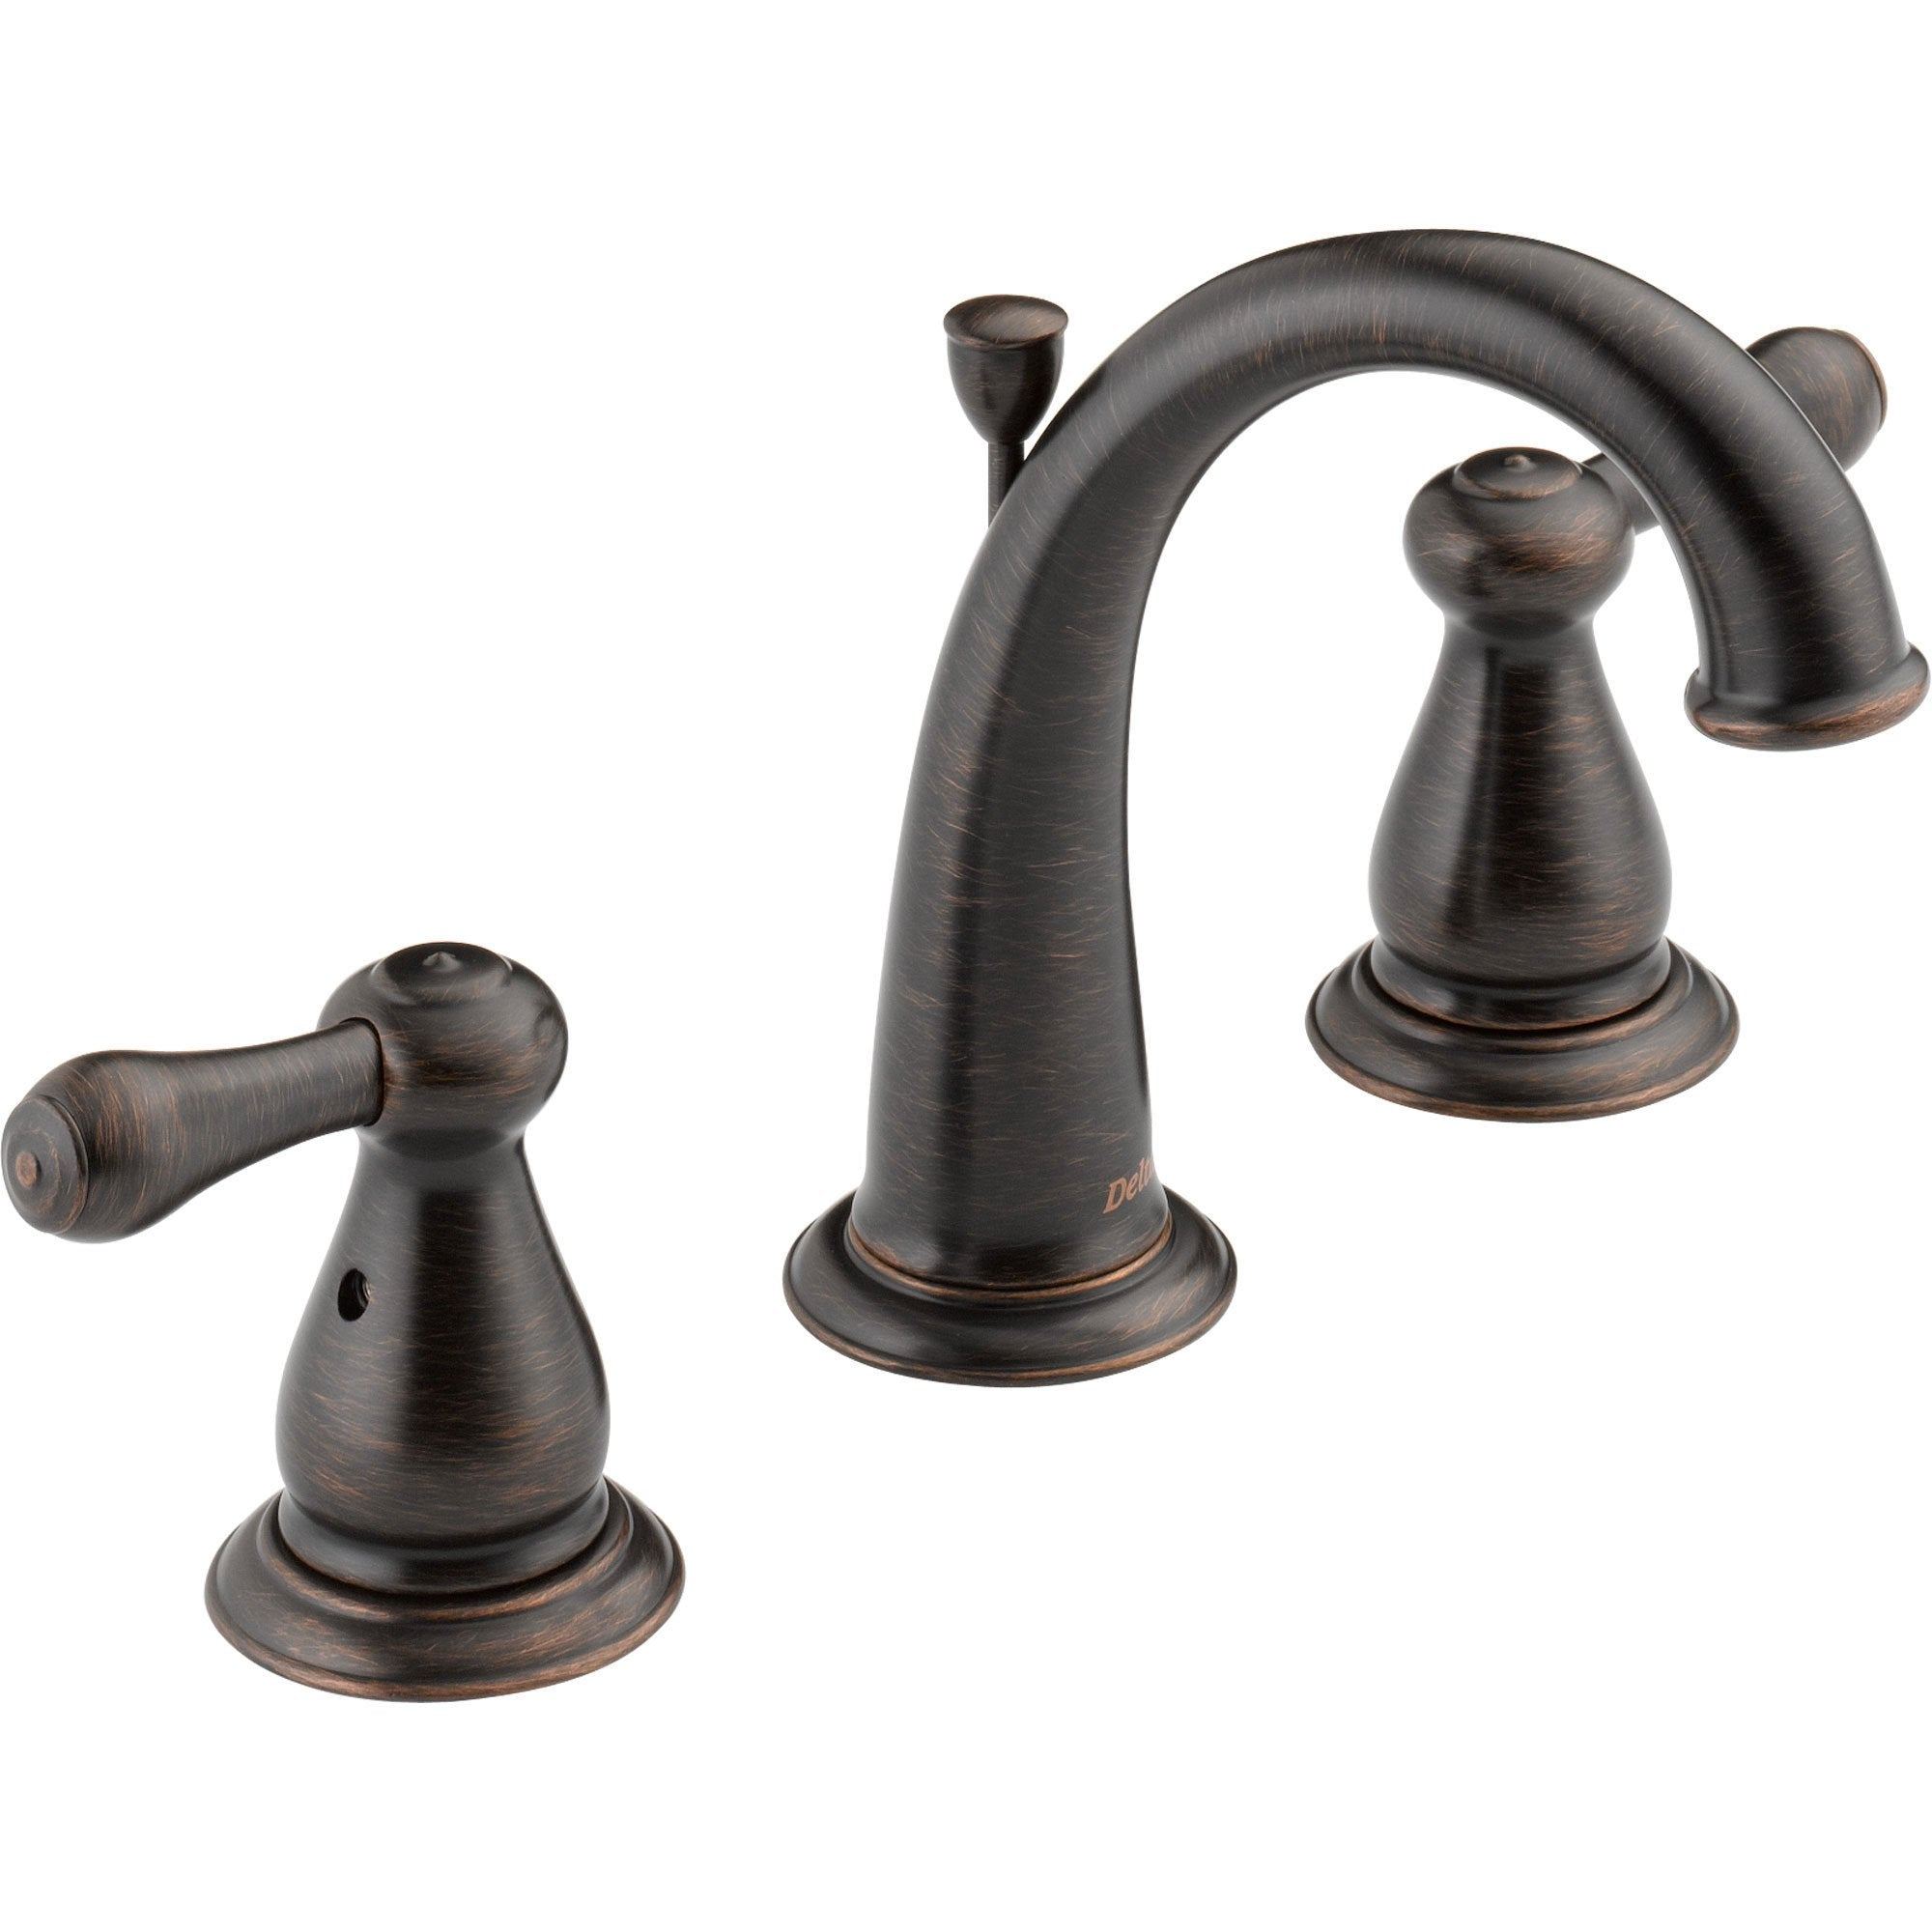 Delta Leland 8 in. Widespread High Arc Bathroom Faucet in Venetian Bronze 572934